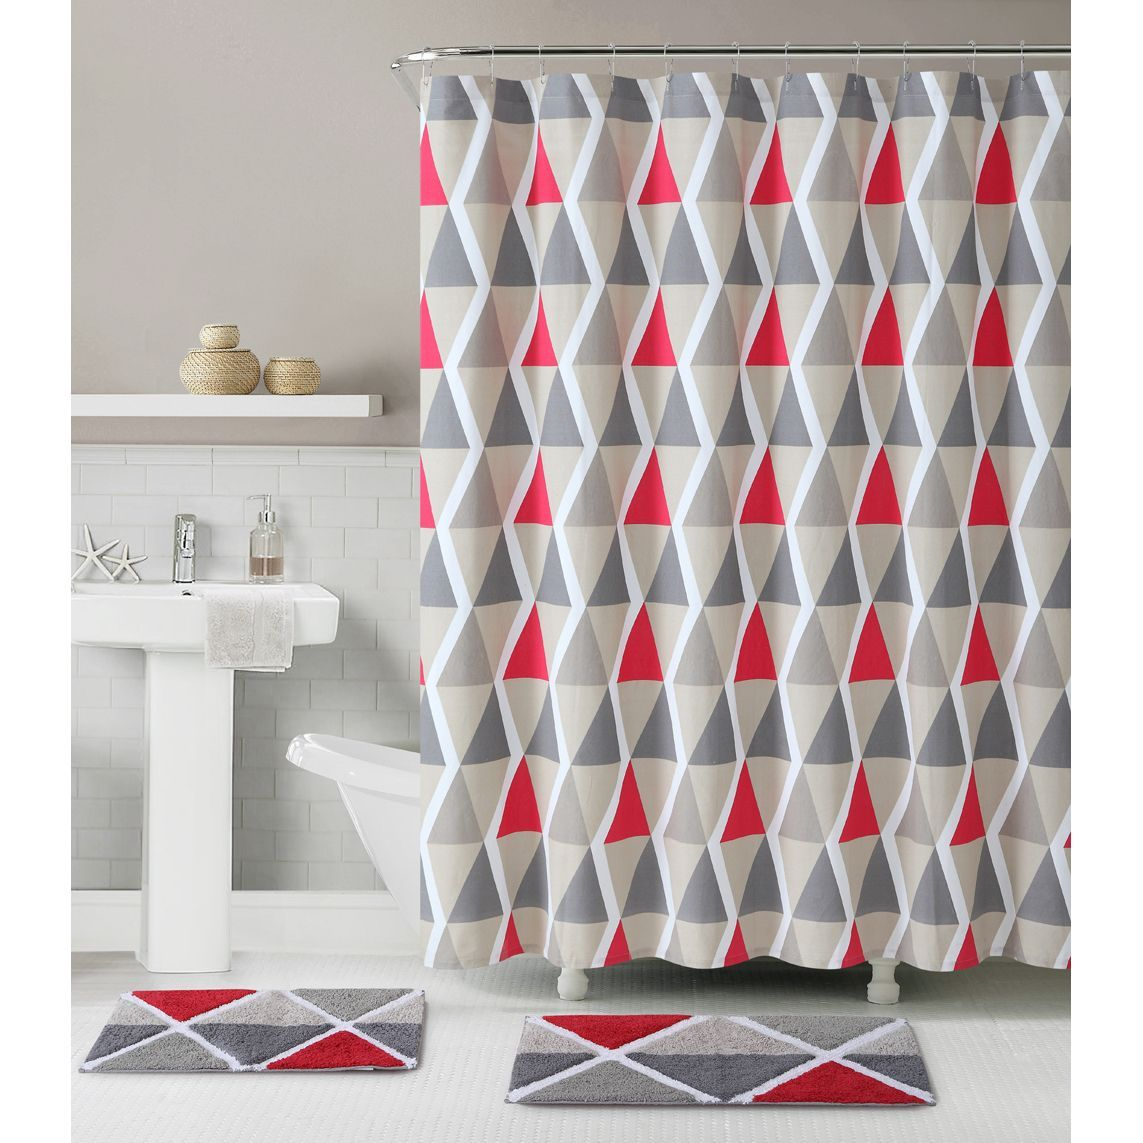 Grayson silver gray jacquard fabric cloth bathroom bath shower curtain - Give Your Bathroom A Fresh New Look With This Fun Le Croix Bath Set Featuring A Multi Color Geometric Shower Curtain And A Matching Rug For The Ultimate